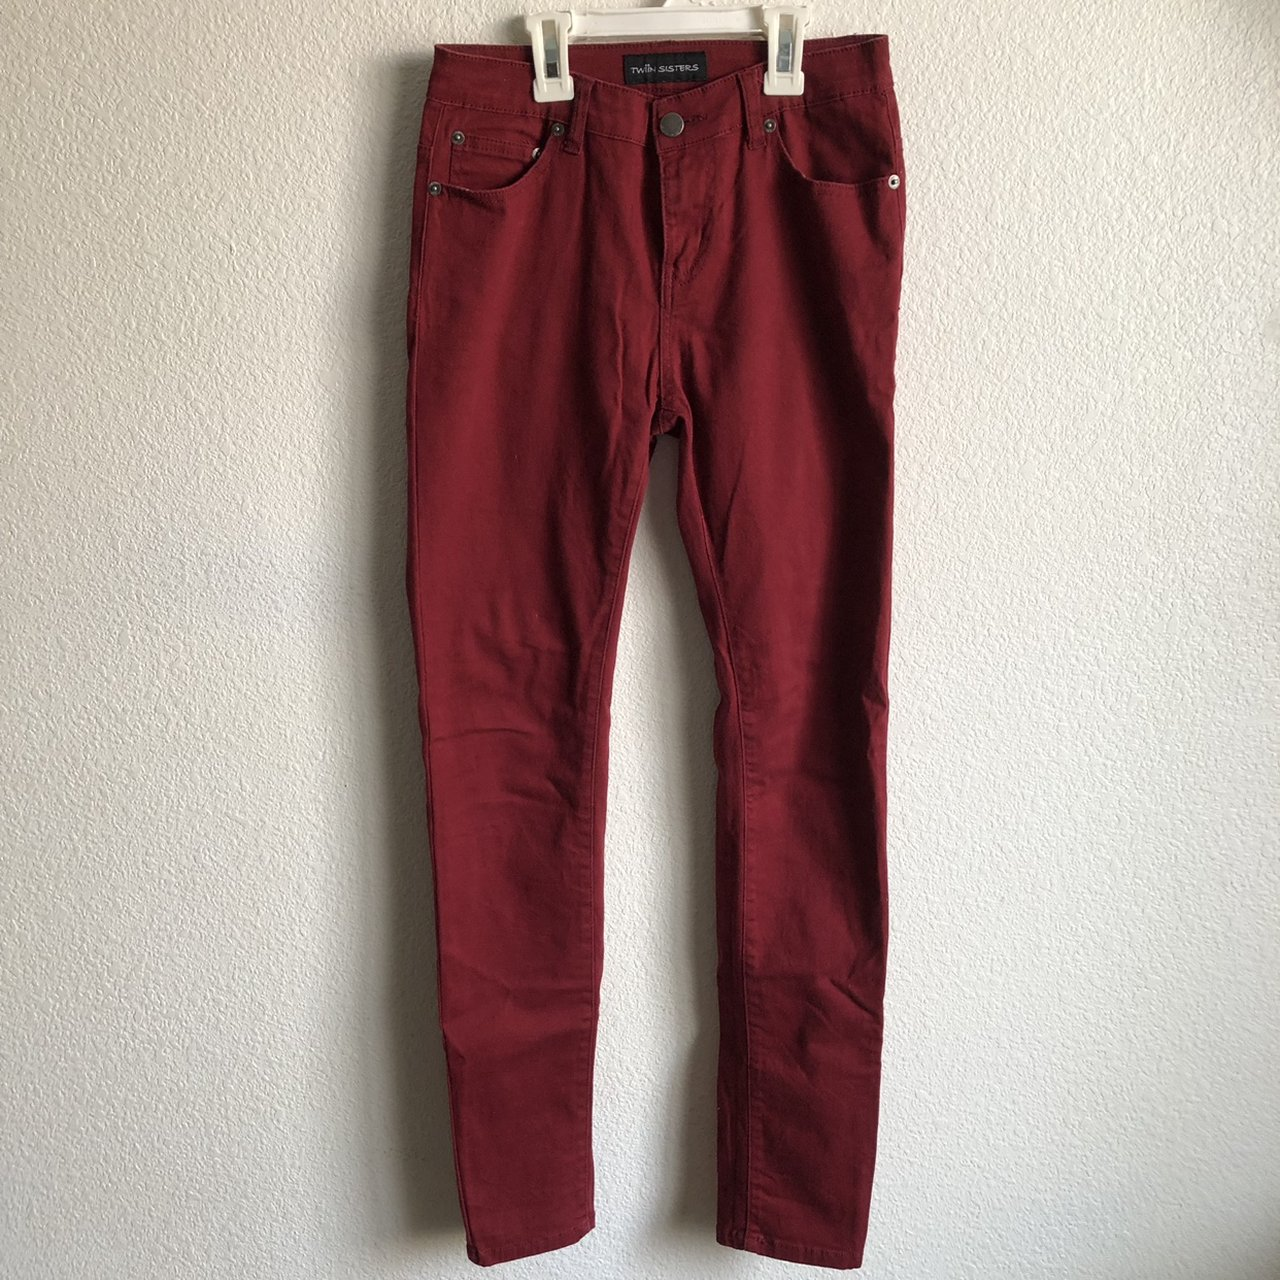 red burgundy maroon colored skinny jeans! would d900200bf258